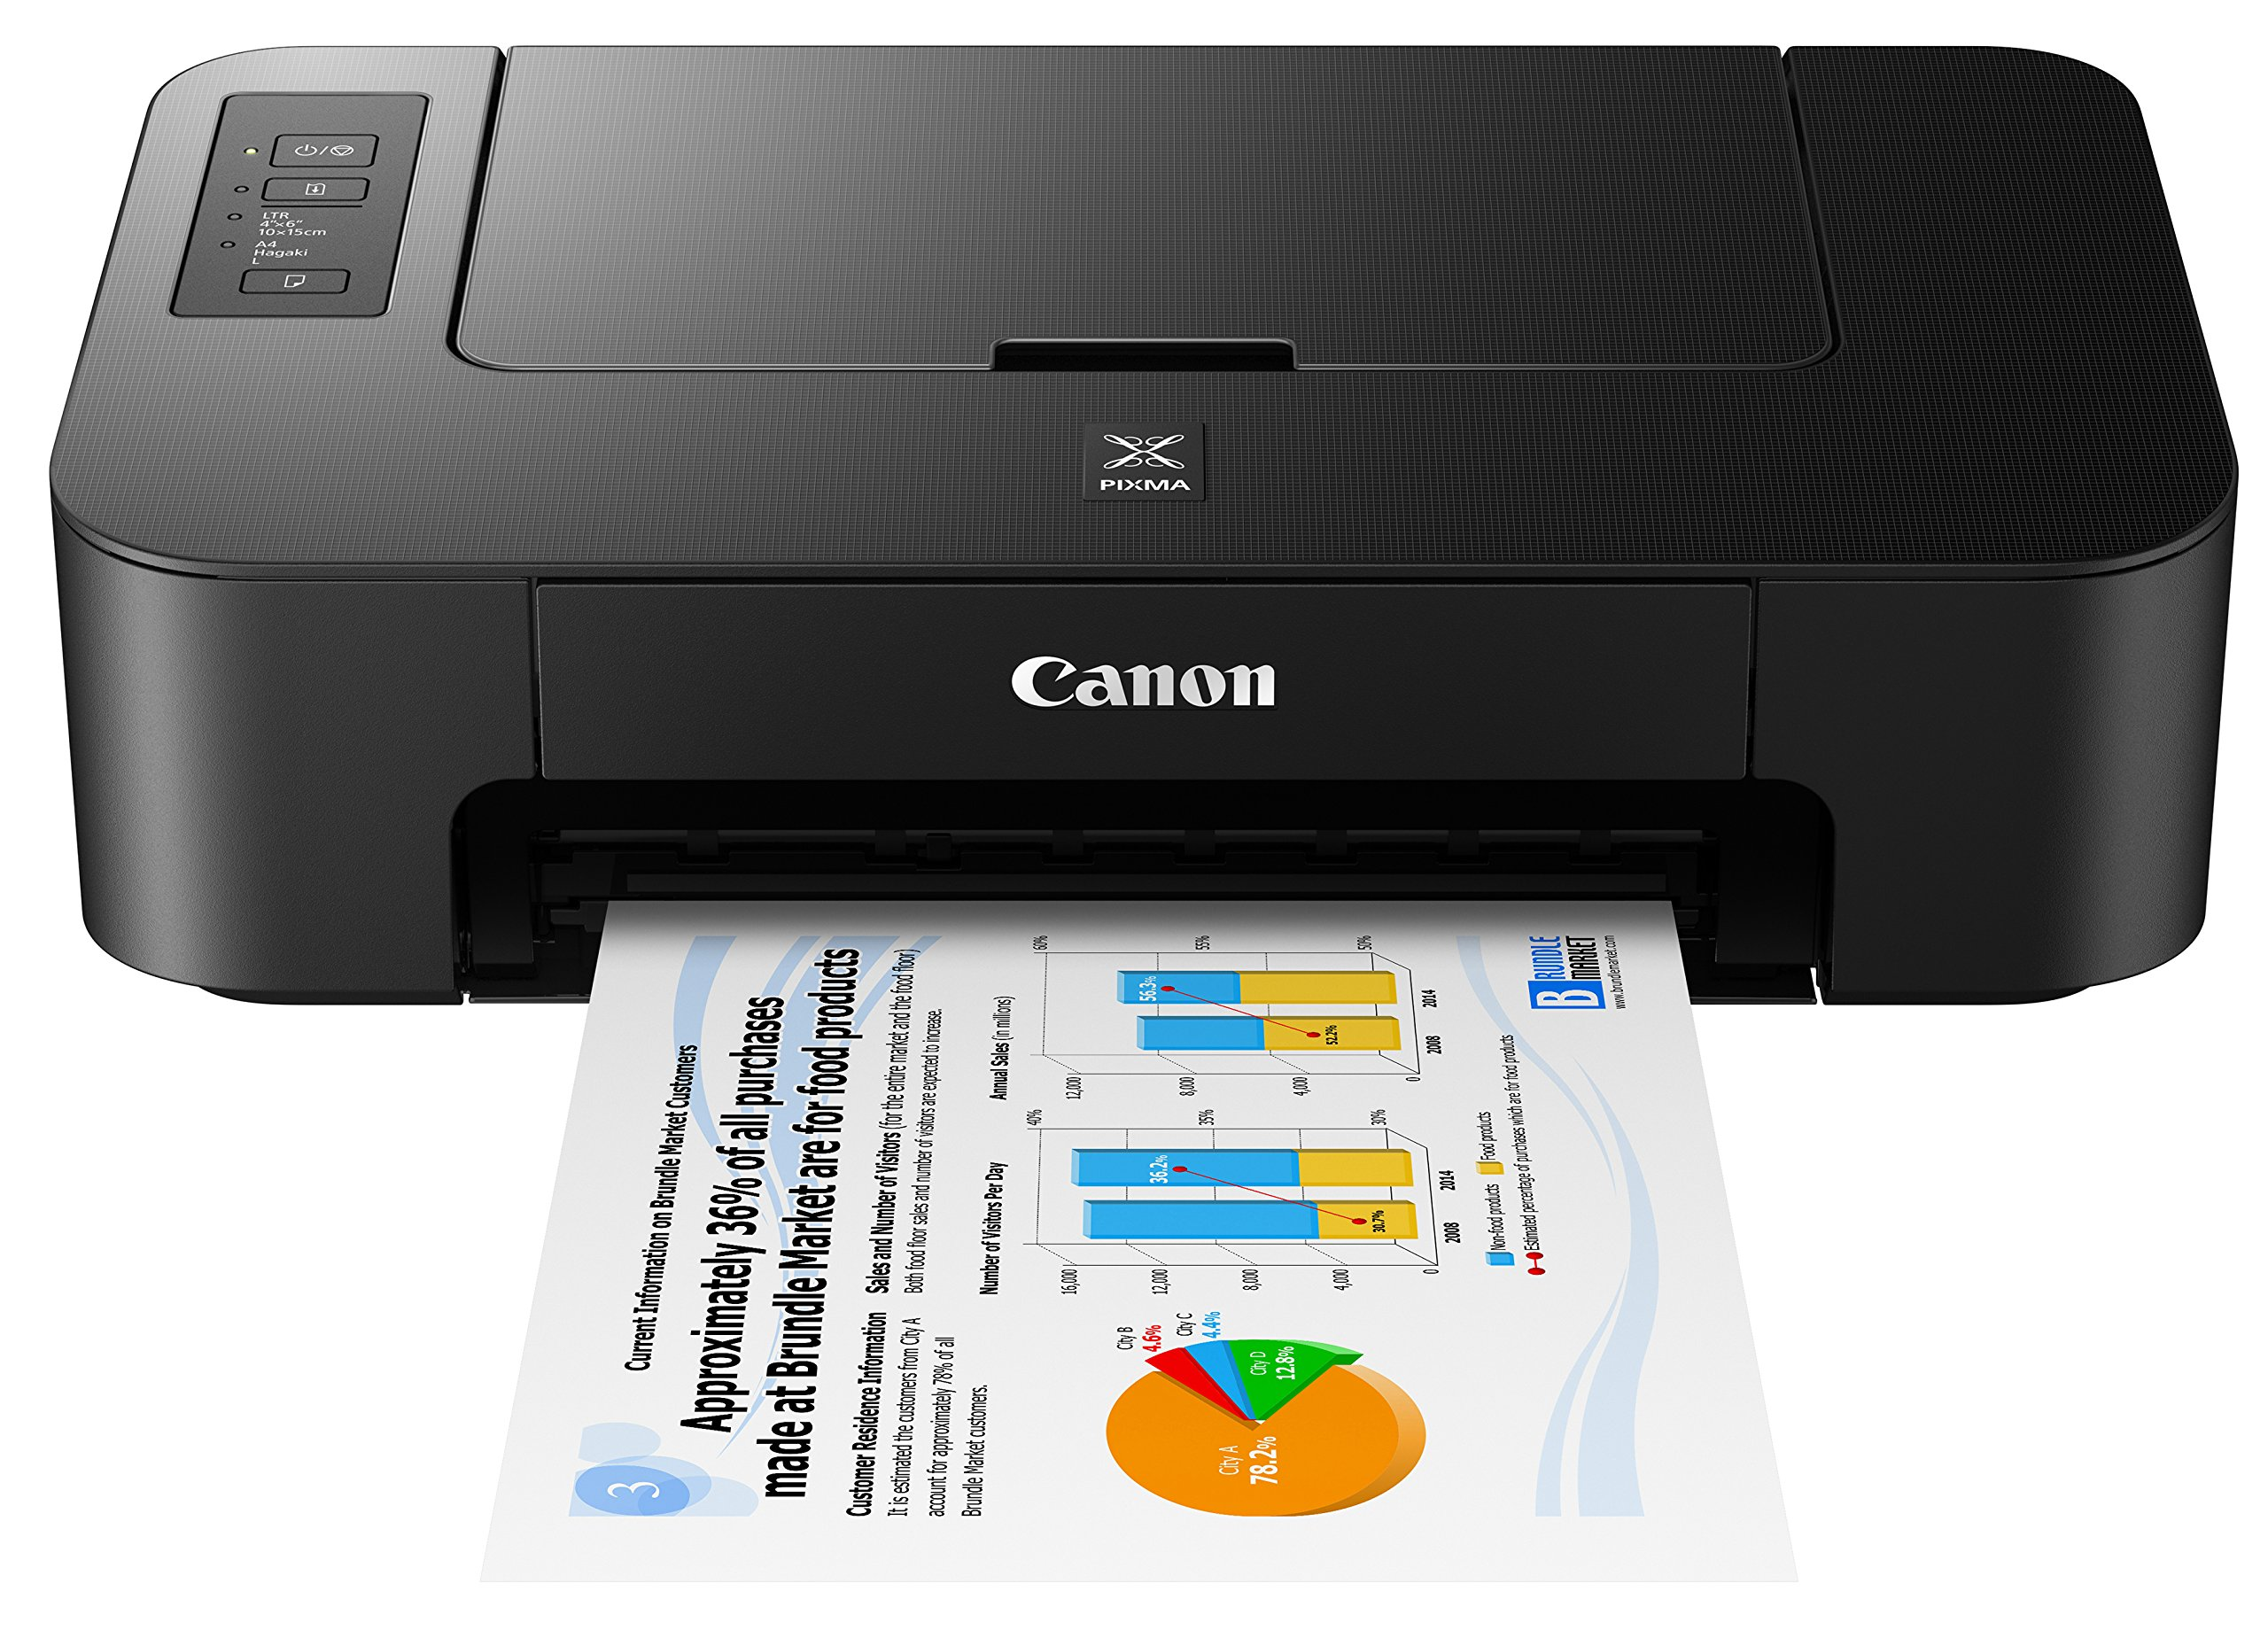 Canon TS202 Inkjet Photo Printer, Black by Canon